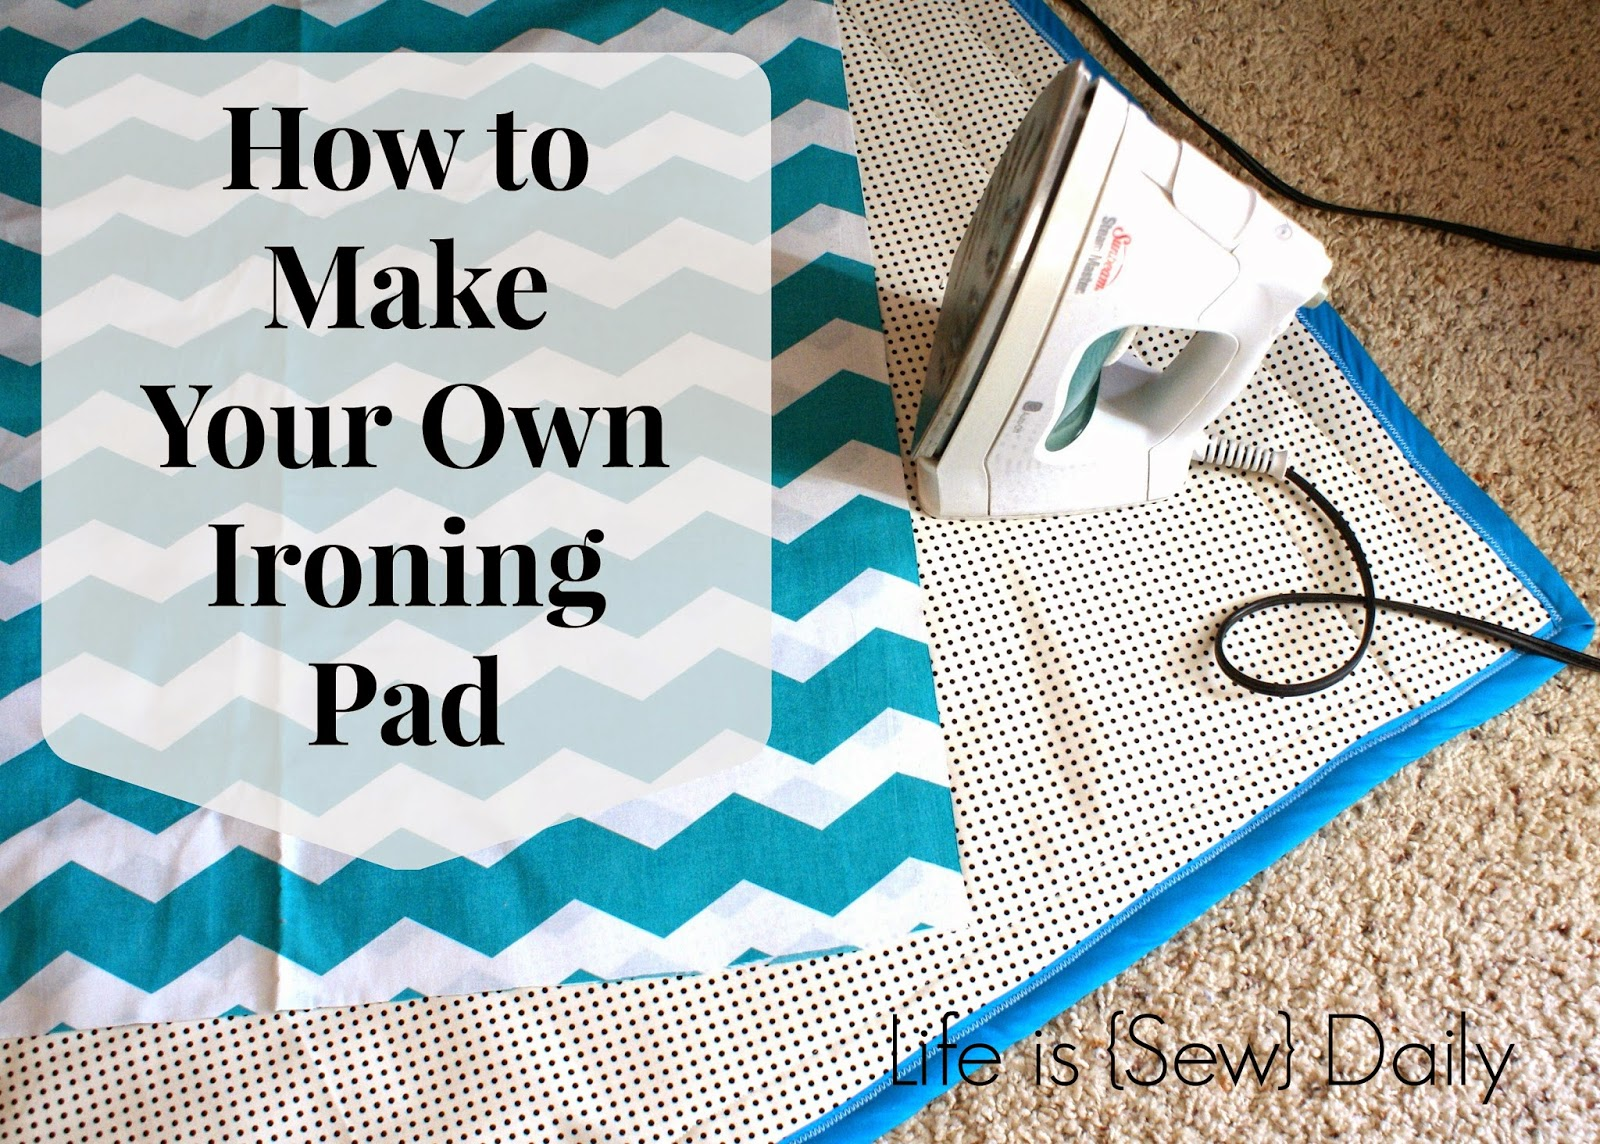 how to make a booty pad